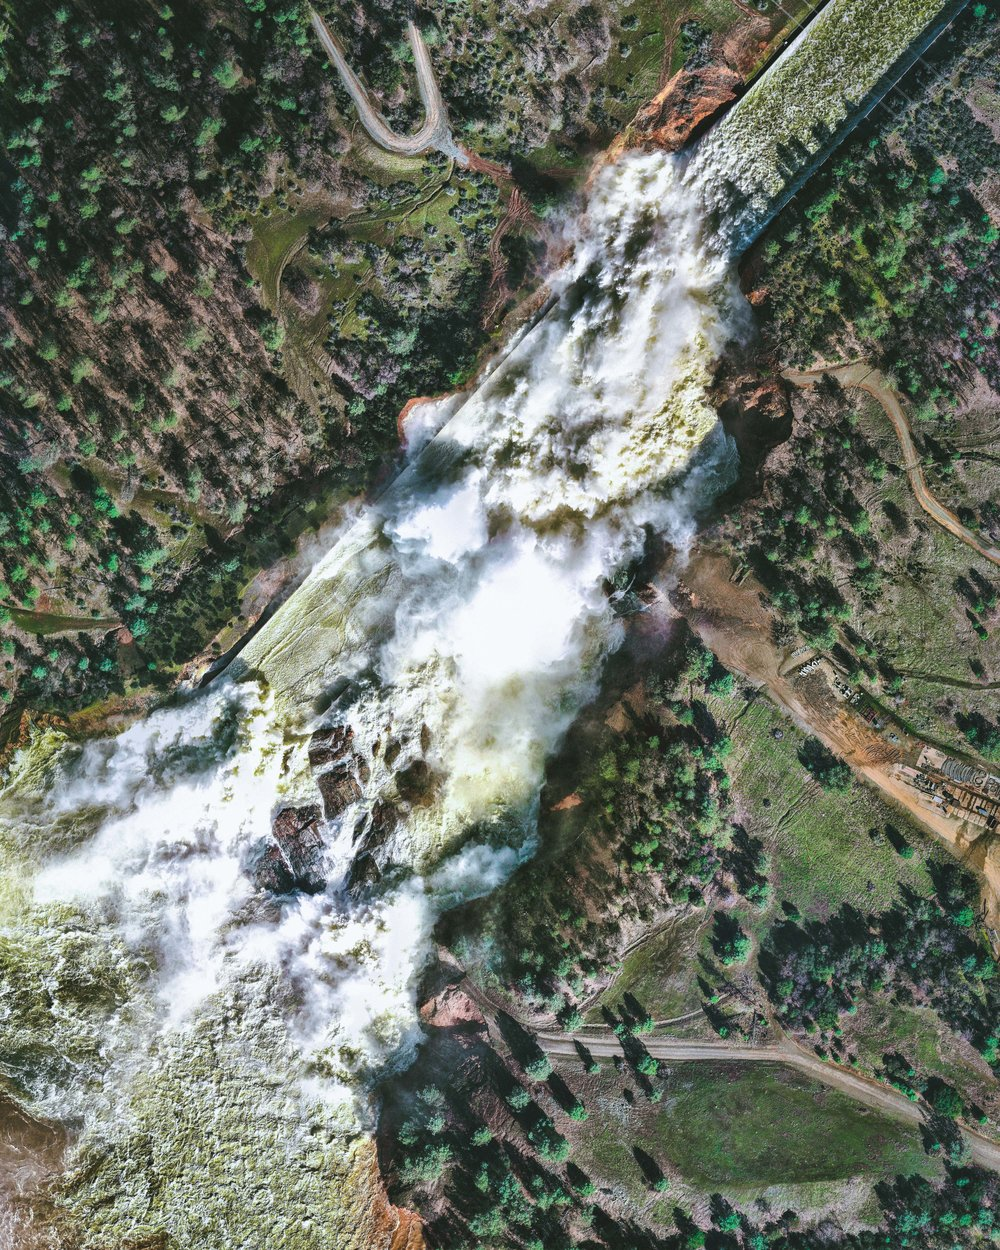 "Water rushes down the main spillway of the Oroville Dam, located on the Feather River in northern California. At 770 feet high (235m), the dam is the tallest in the United States and serves mainly for water supply, hydroelectricity generation, and flood control. Amid heavy rainfall in February 2017, this spillway was significantly damaged and more than 180,000 people living downstream were evacuated.  39°32'21.2""N, 121°29'48.6""W  Source imagery: Nearmap"